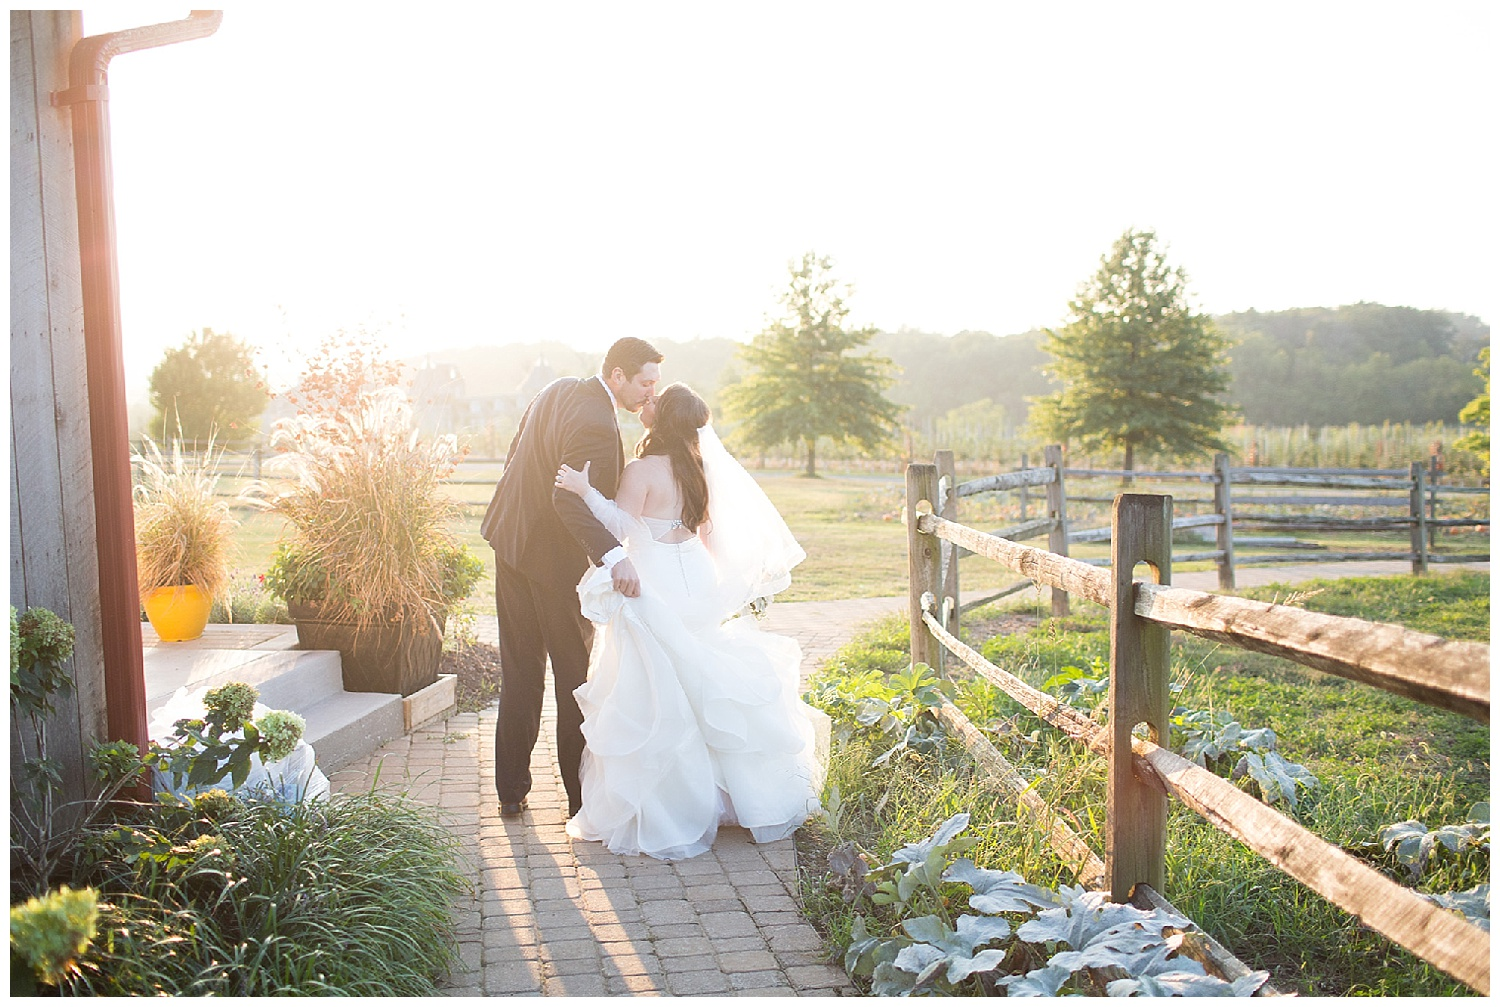 Rustic Glam Fall Wedding at Rich Farms • Jessica Fike Photography ...